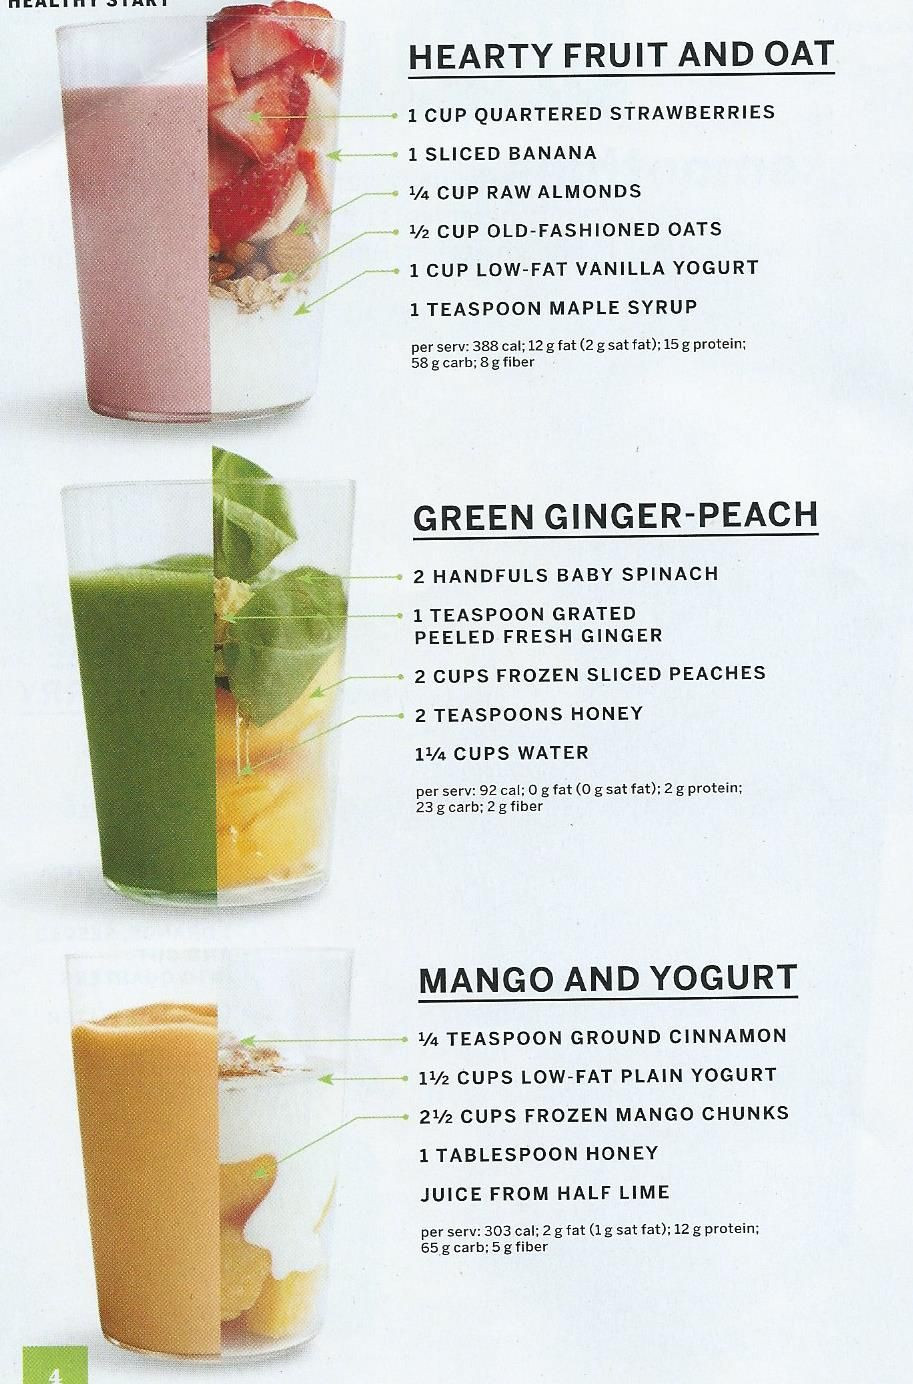 Easy Healthy Smoothie Recipes For Weight Loss  FREE 12 Day Green Smoothie E Course